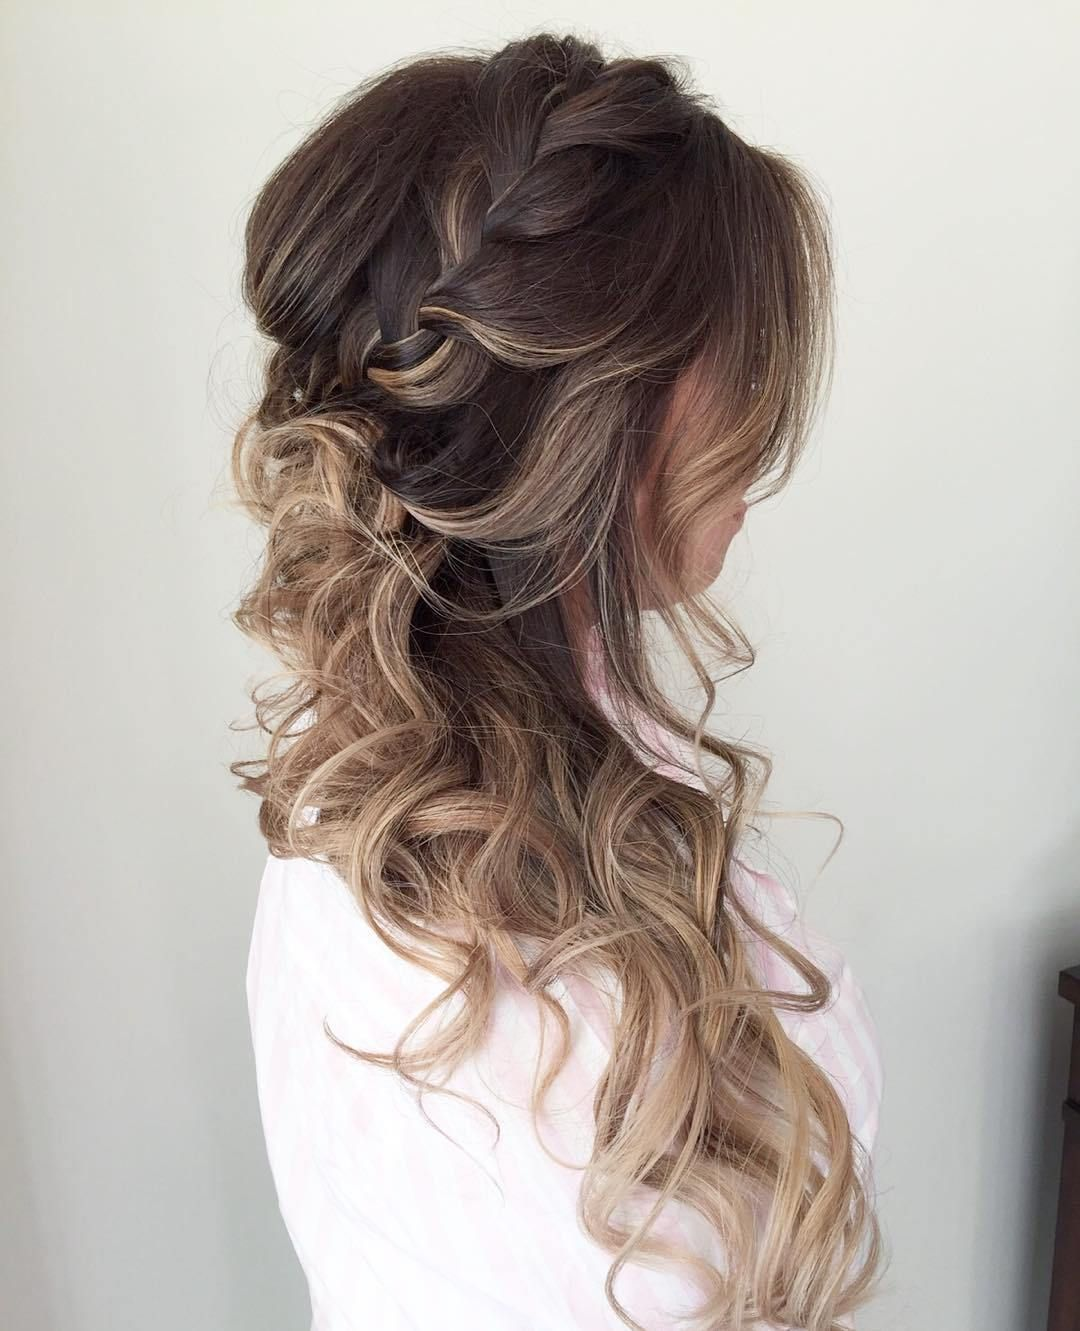 40 Picture Perfect Hairstyles For Long Thin Hair Long Thin Hair Wedding Hairstyles Thin Hair Really Long Hair